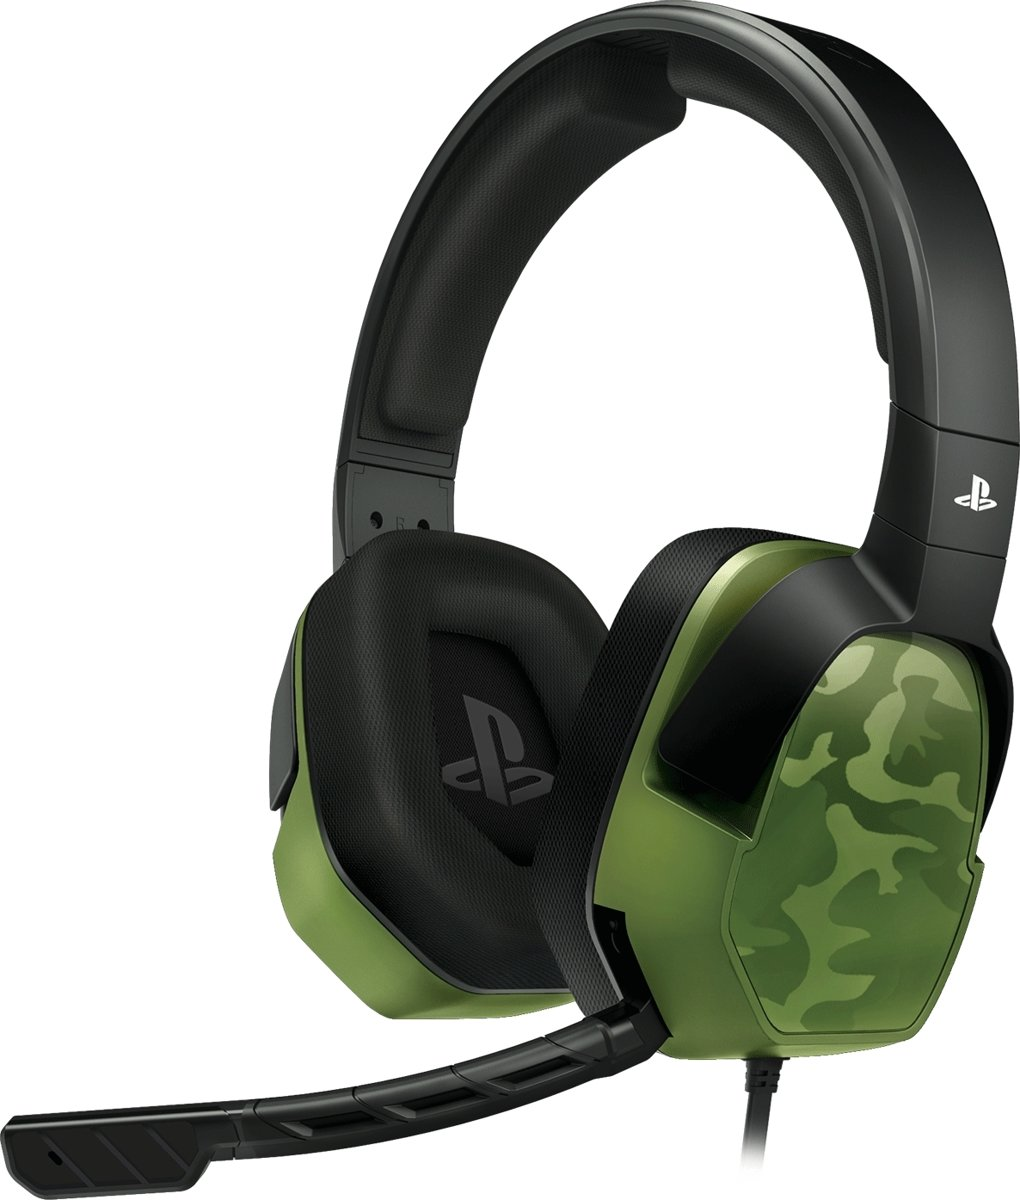 Afterglow LVL 3 - Gaming Headset - Offical Licensed - PS4 - Groen Camo